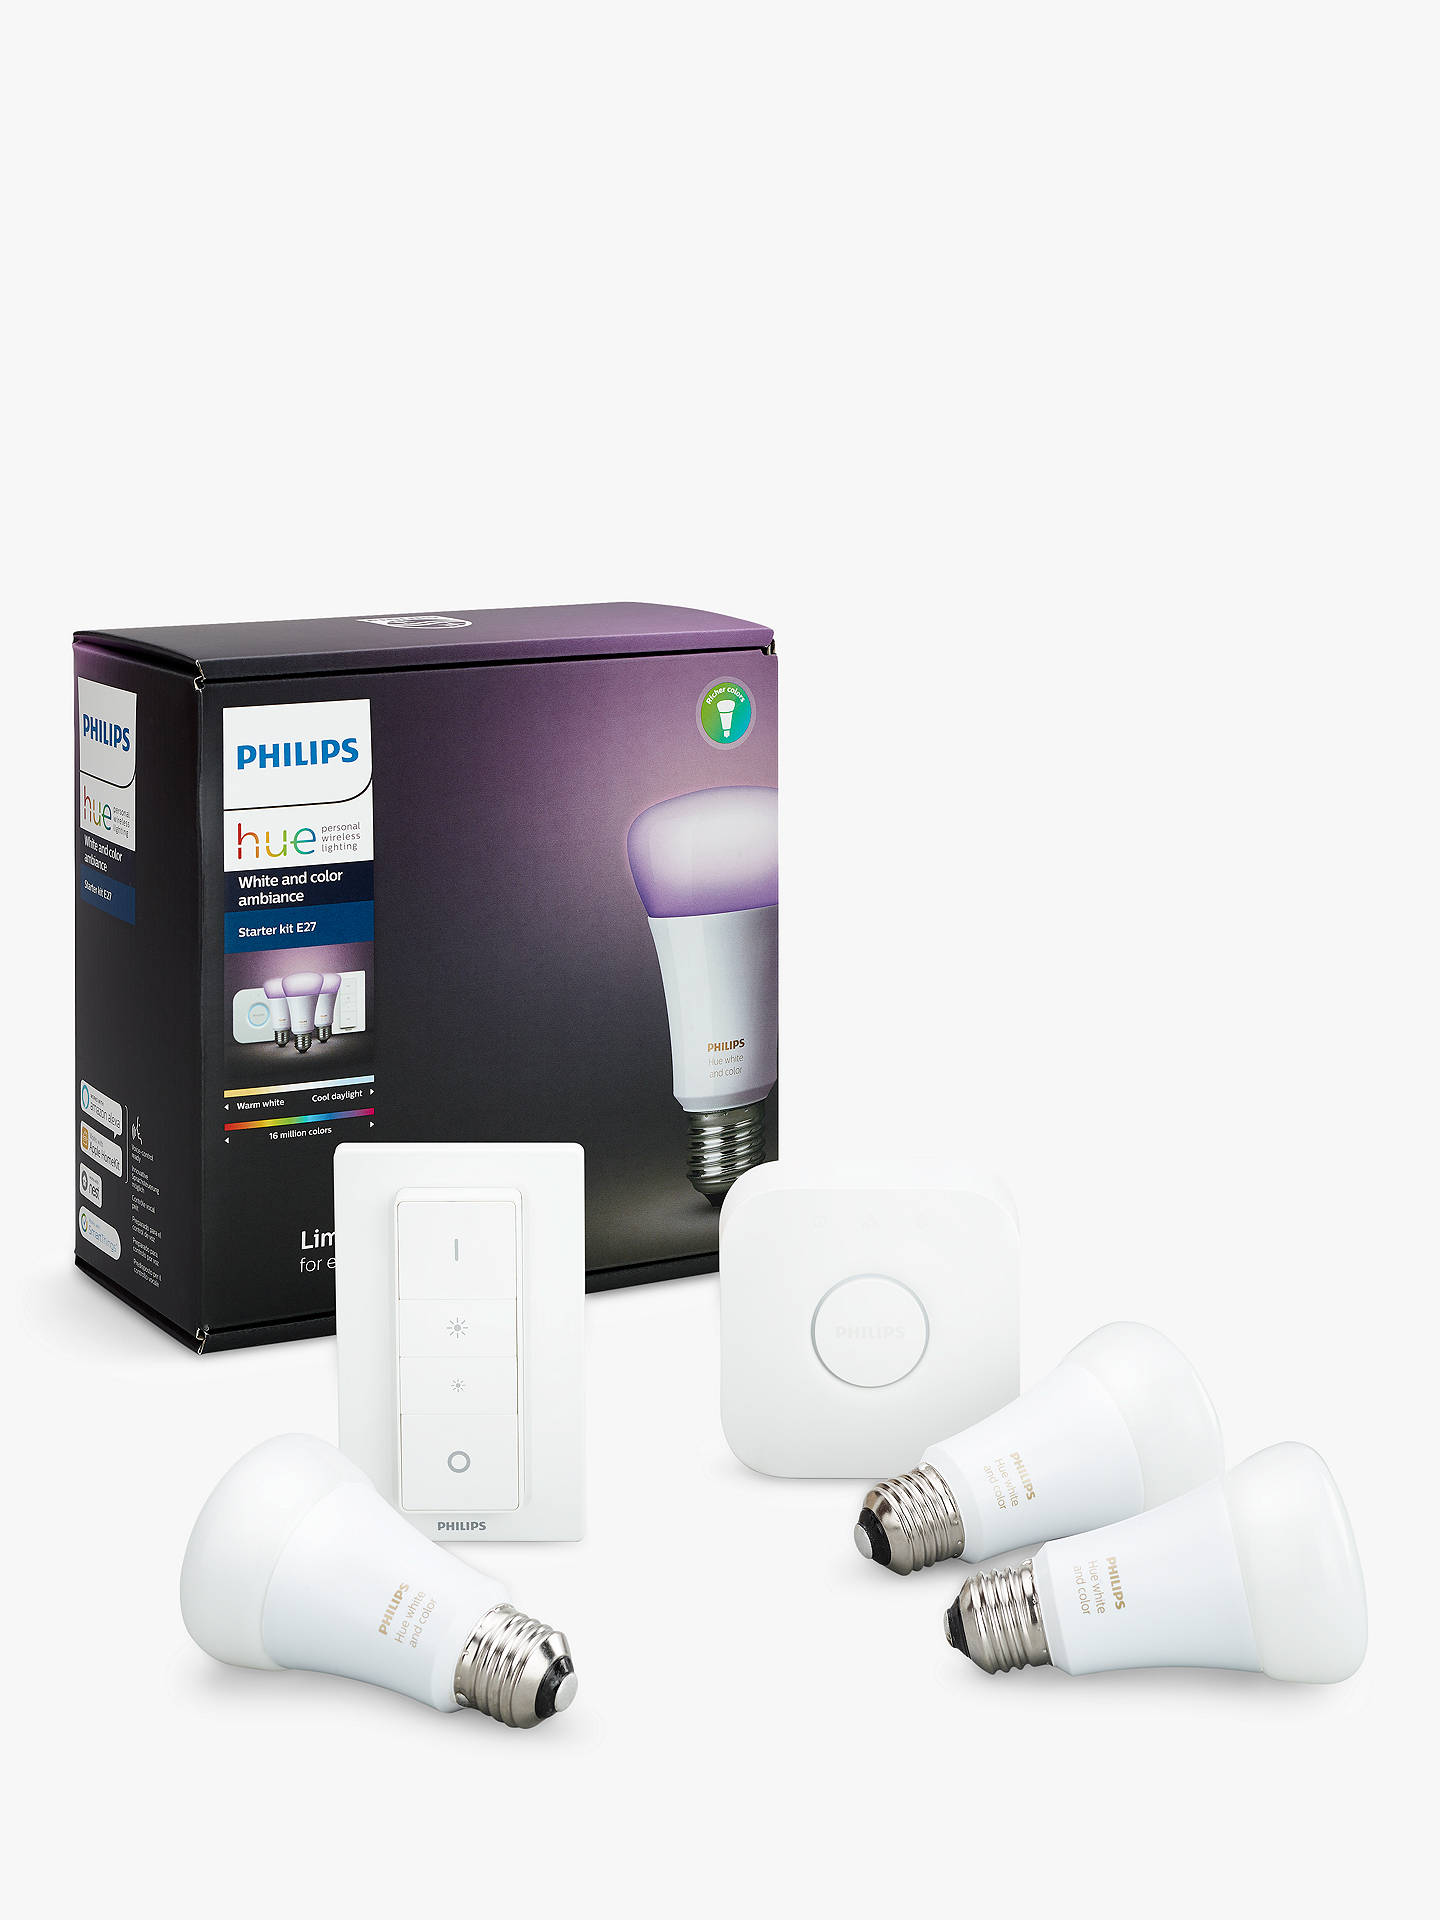 Fluorescent Lamp Lights Starter Philips Hue White And Colour Ambiance Wireless Lighting Led Buyphilips Kit With 3 Bulbs 10w